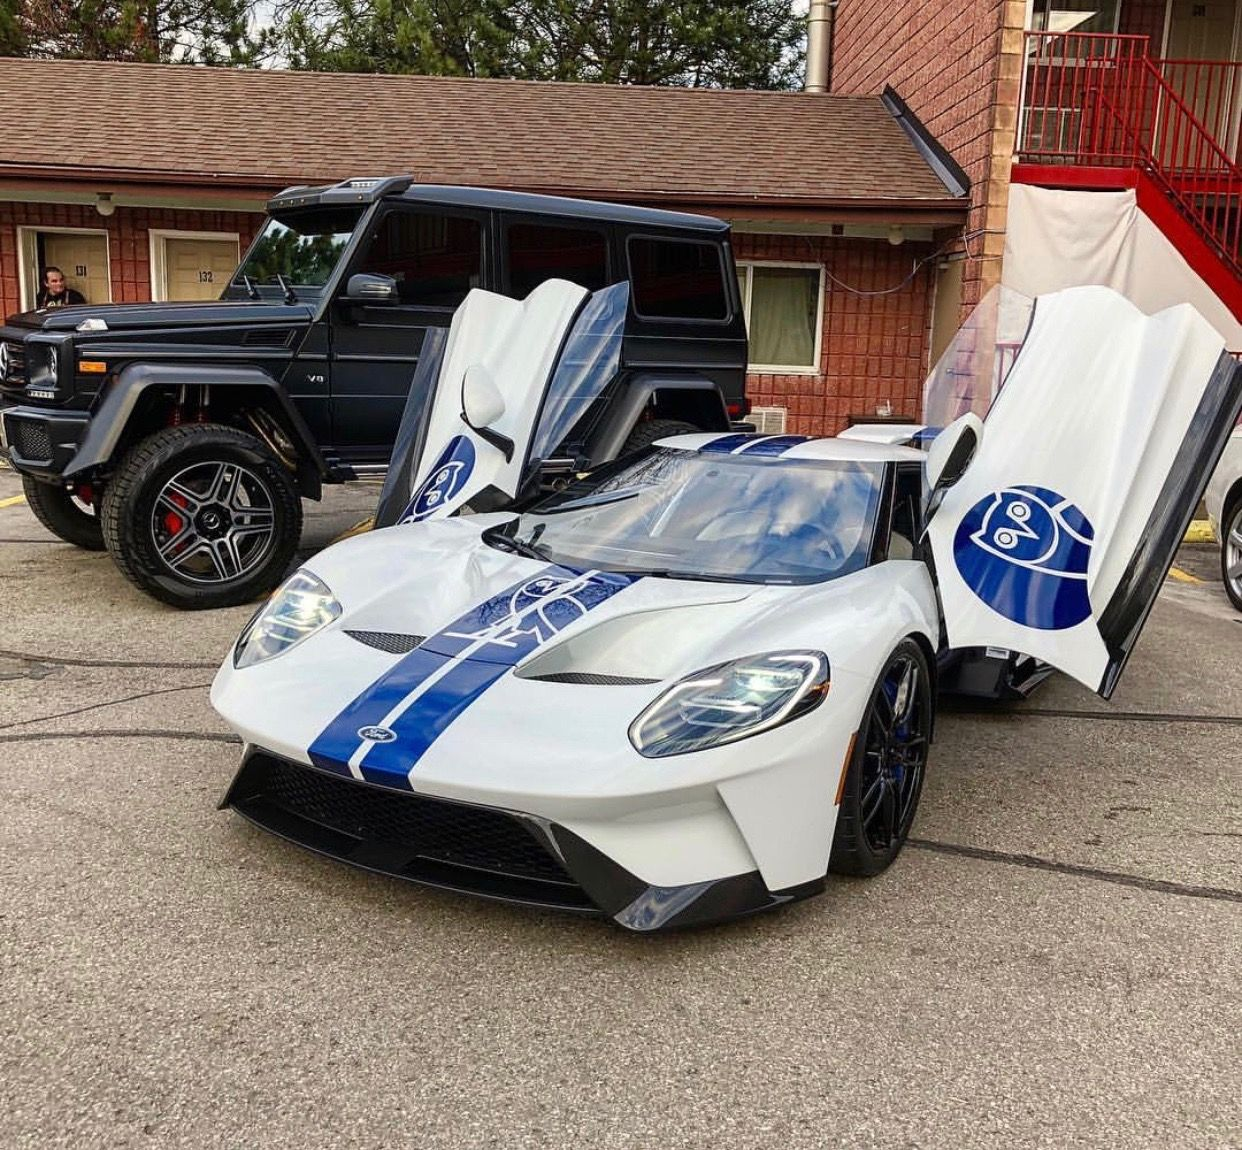 Ford Gt Painted In White W Blue Racing Stripes With The Ovo Owl